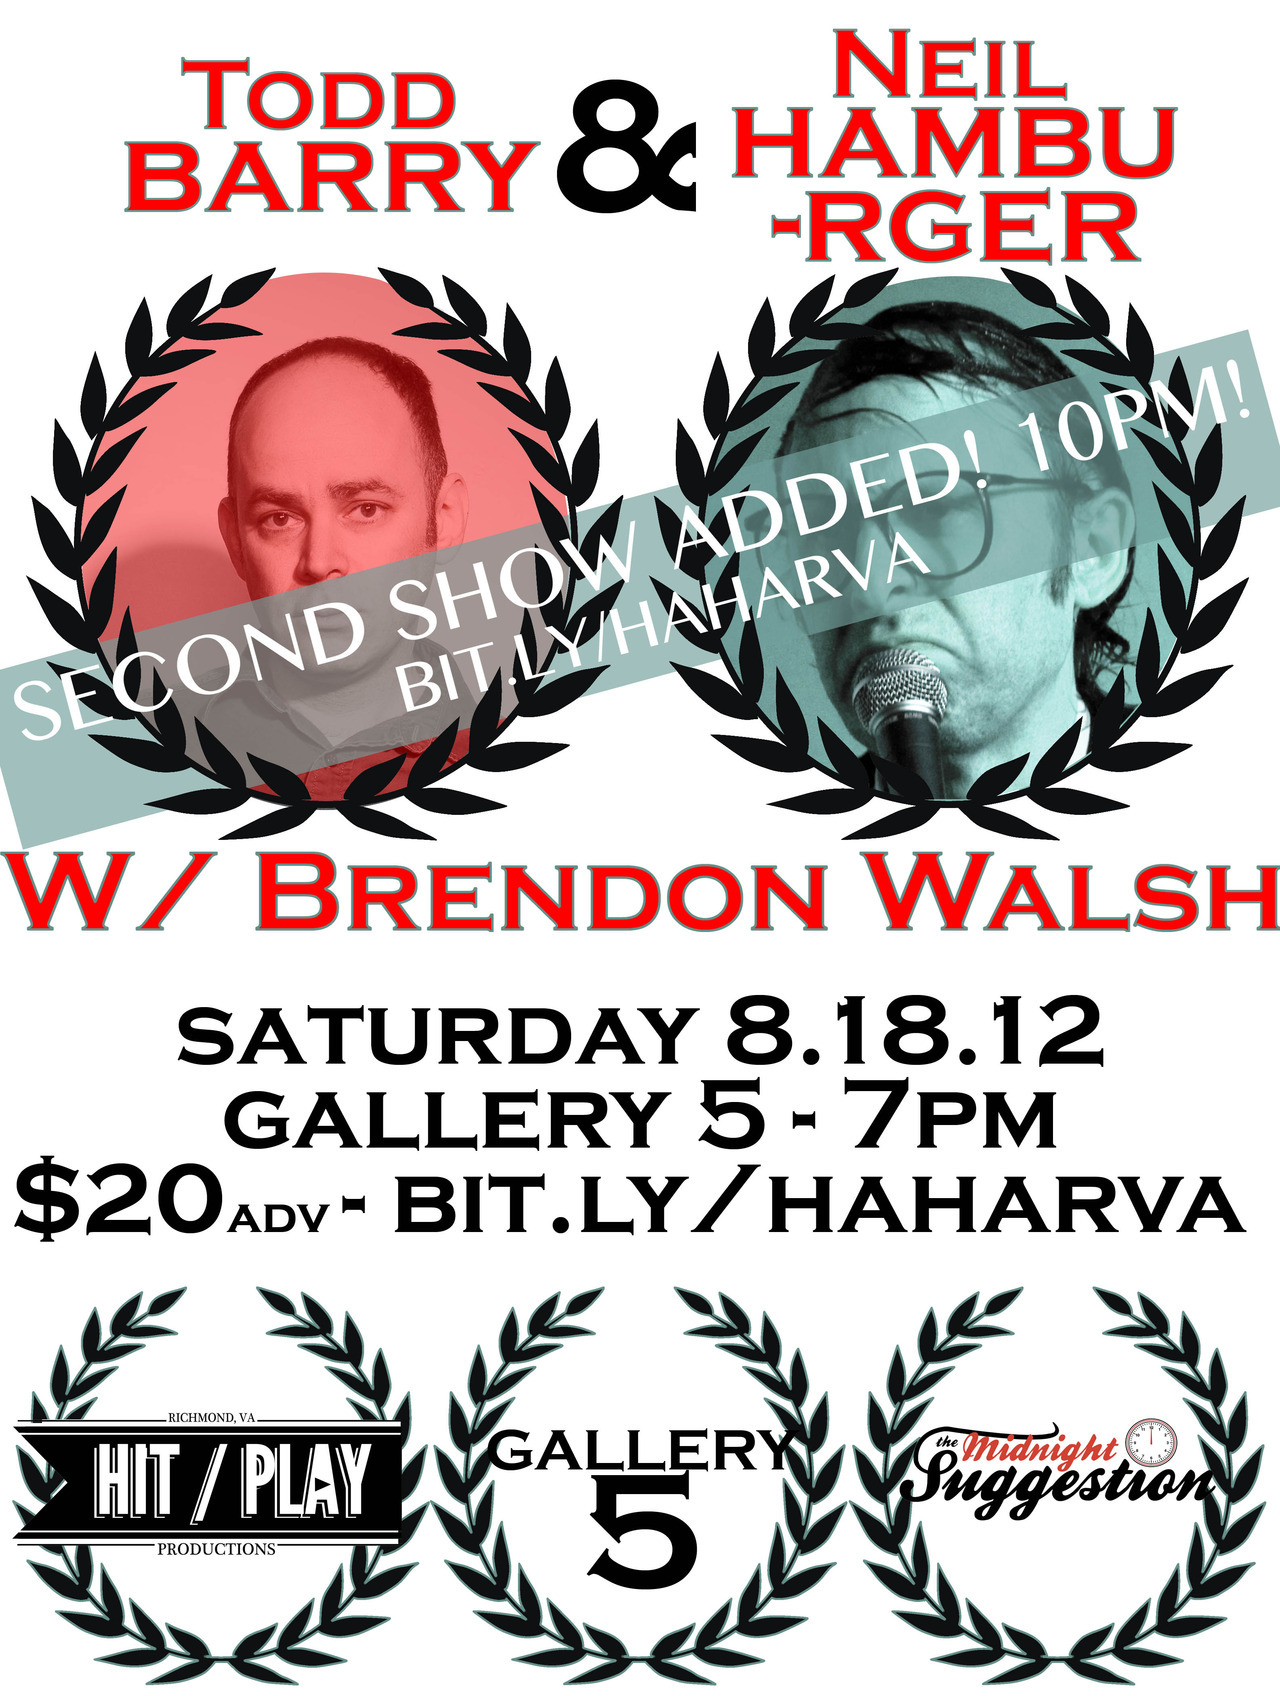 Booked & Promoted Todd Barry & Neil Hamburger w/ Brendon Walsh - 8.18.12